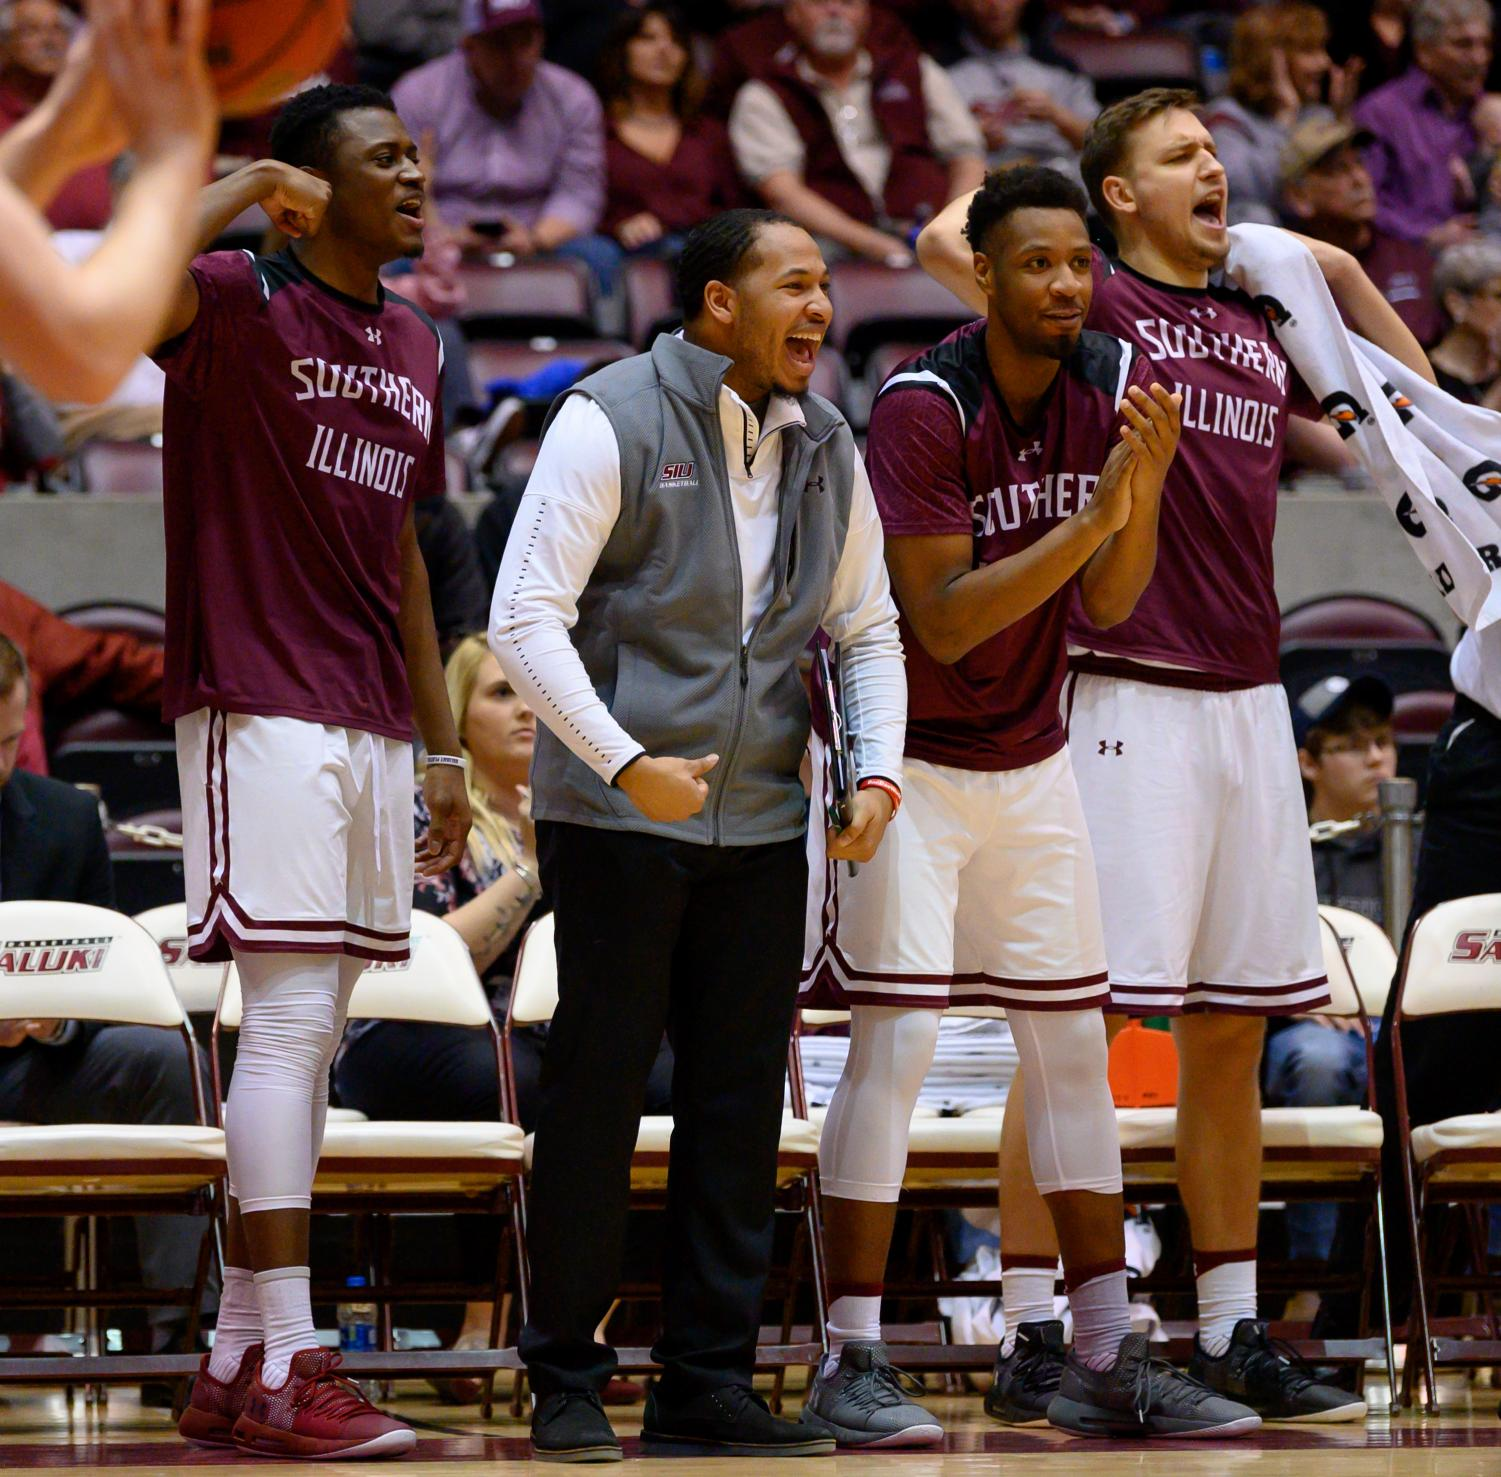 The+Salukis+bench+celebrates+a+basket+on+Sunday%2C+Feb.+24%2C+2019%2C+during+a+matchup+between+the+Southern+Illinois+Salukis+and+the+Loyola+Ramblers+at+SIU+Arena.